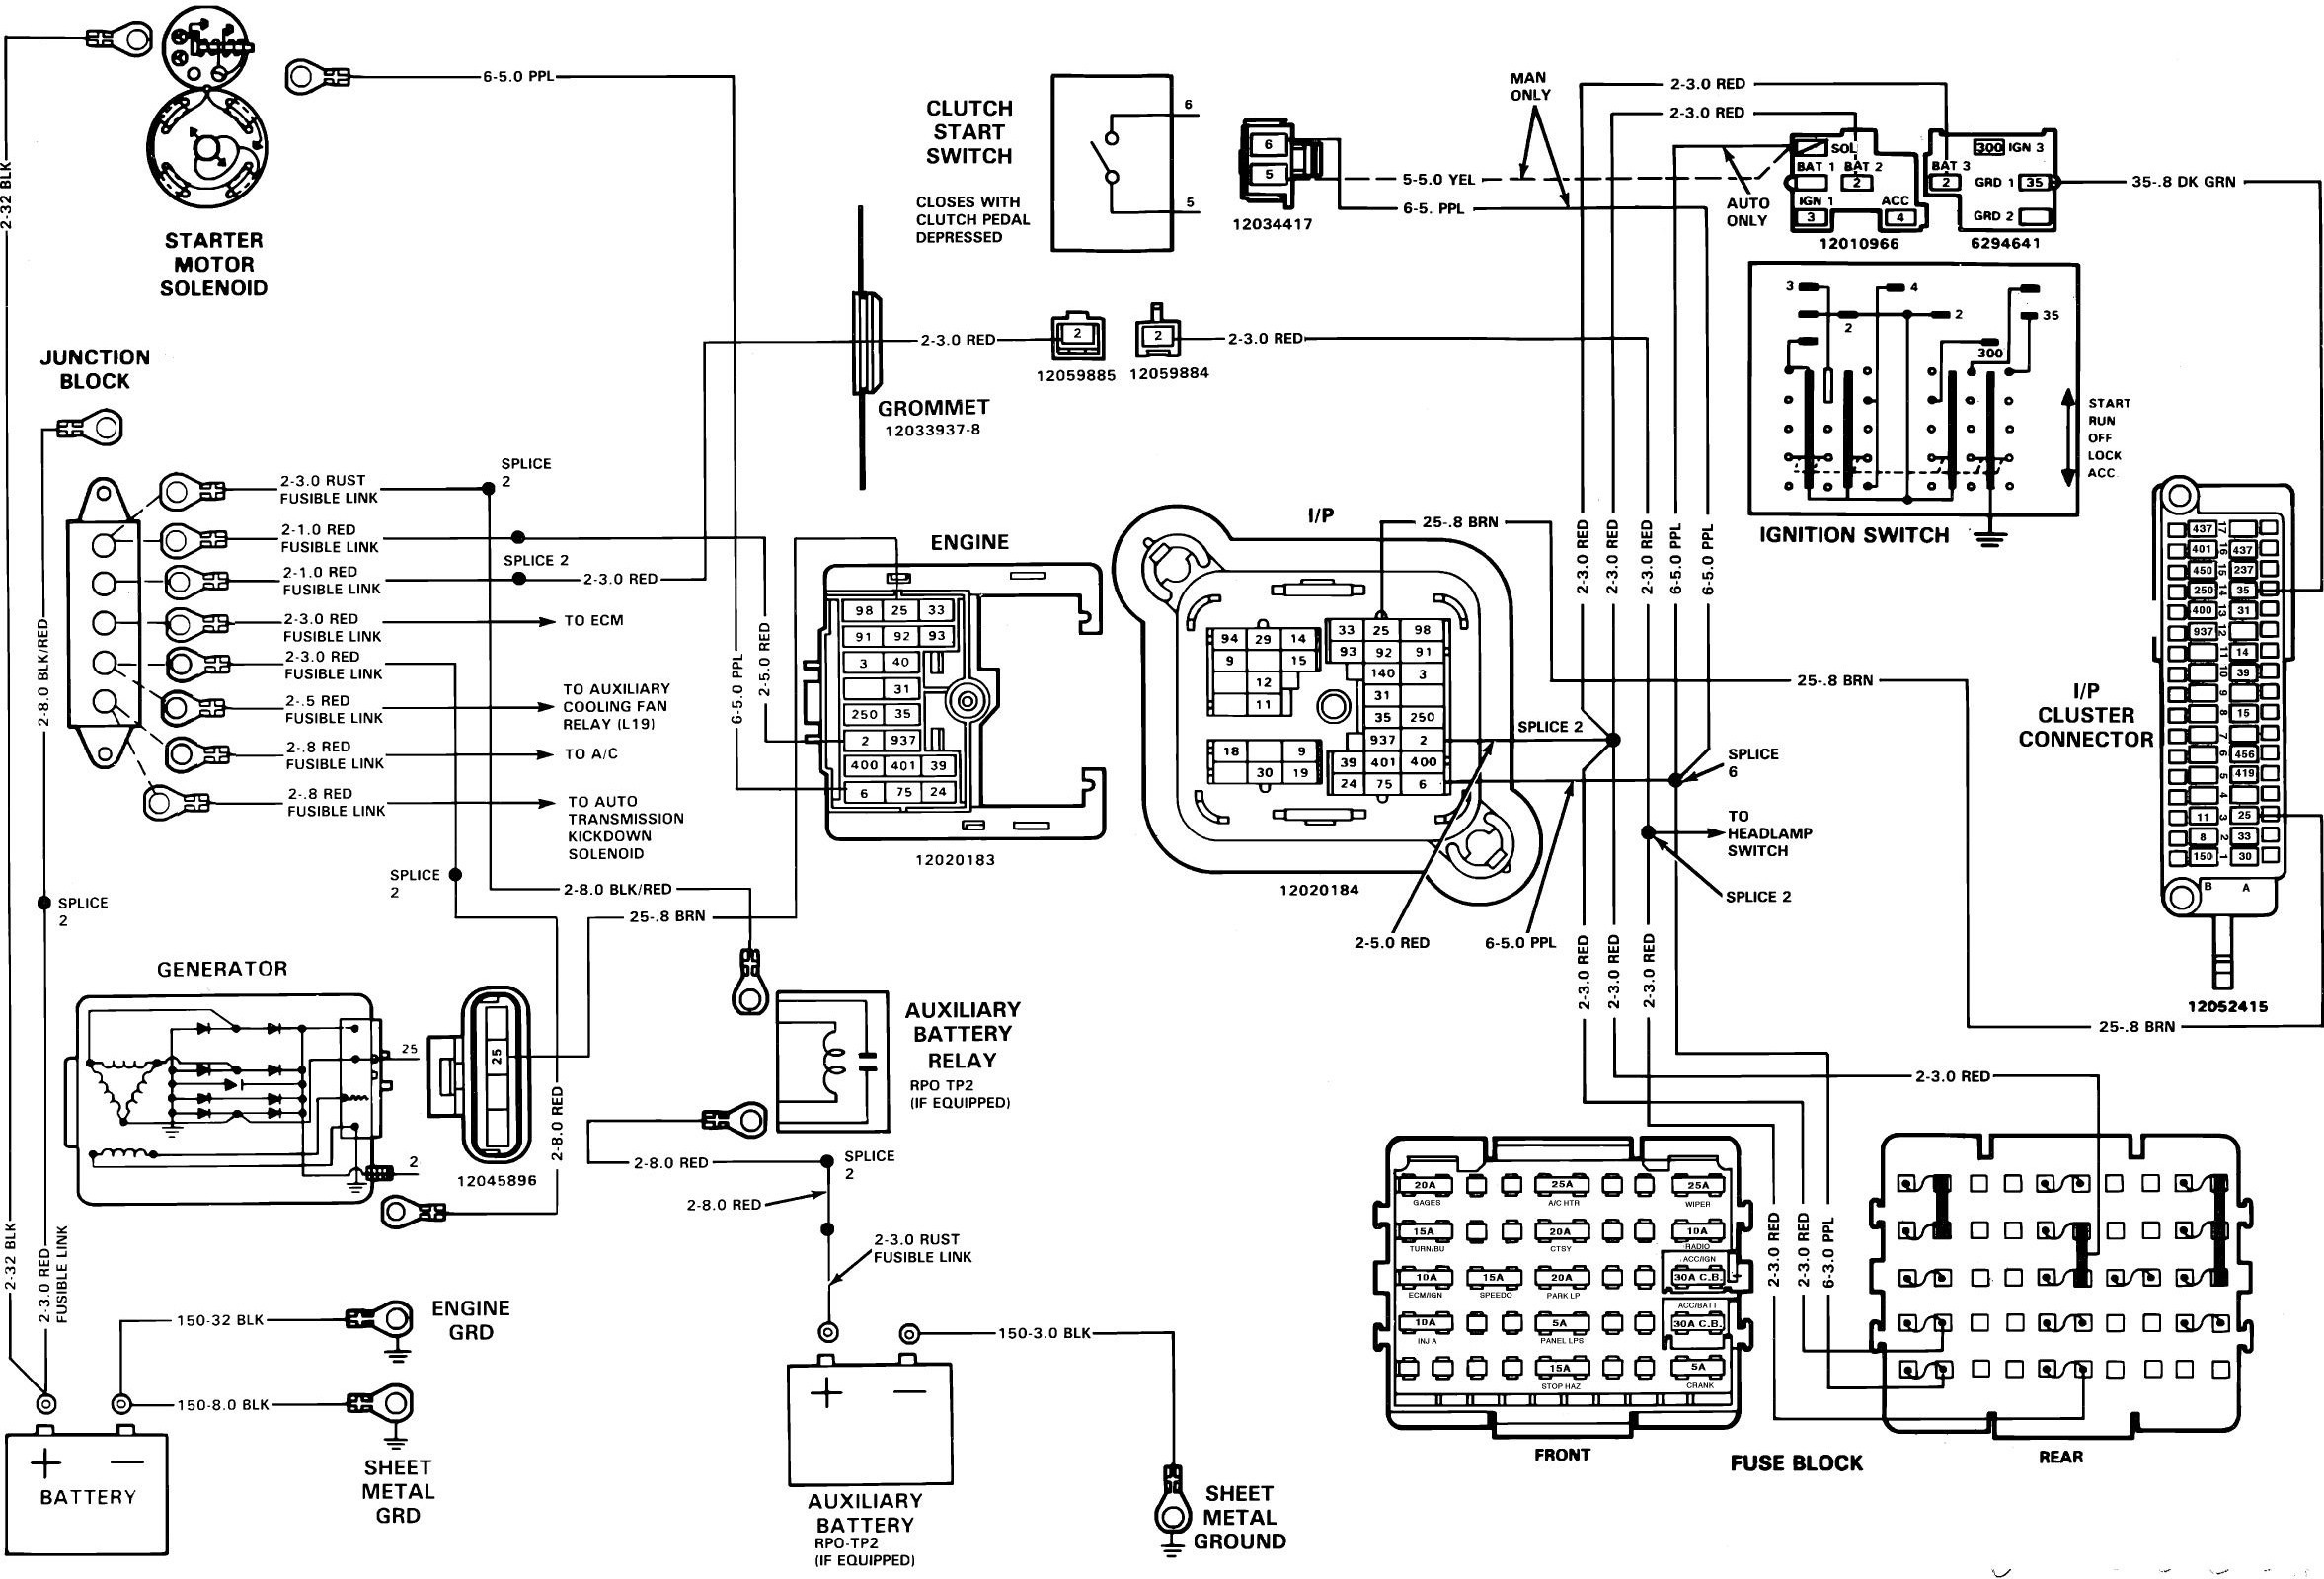 1981 chevy truck wire harness diagram